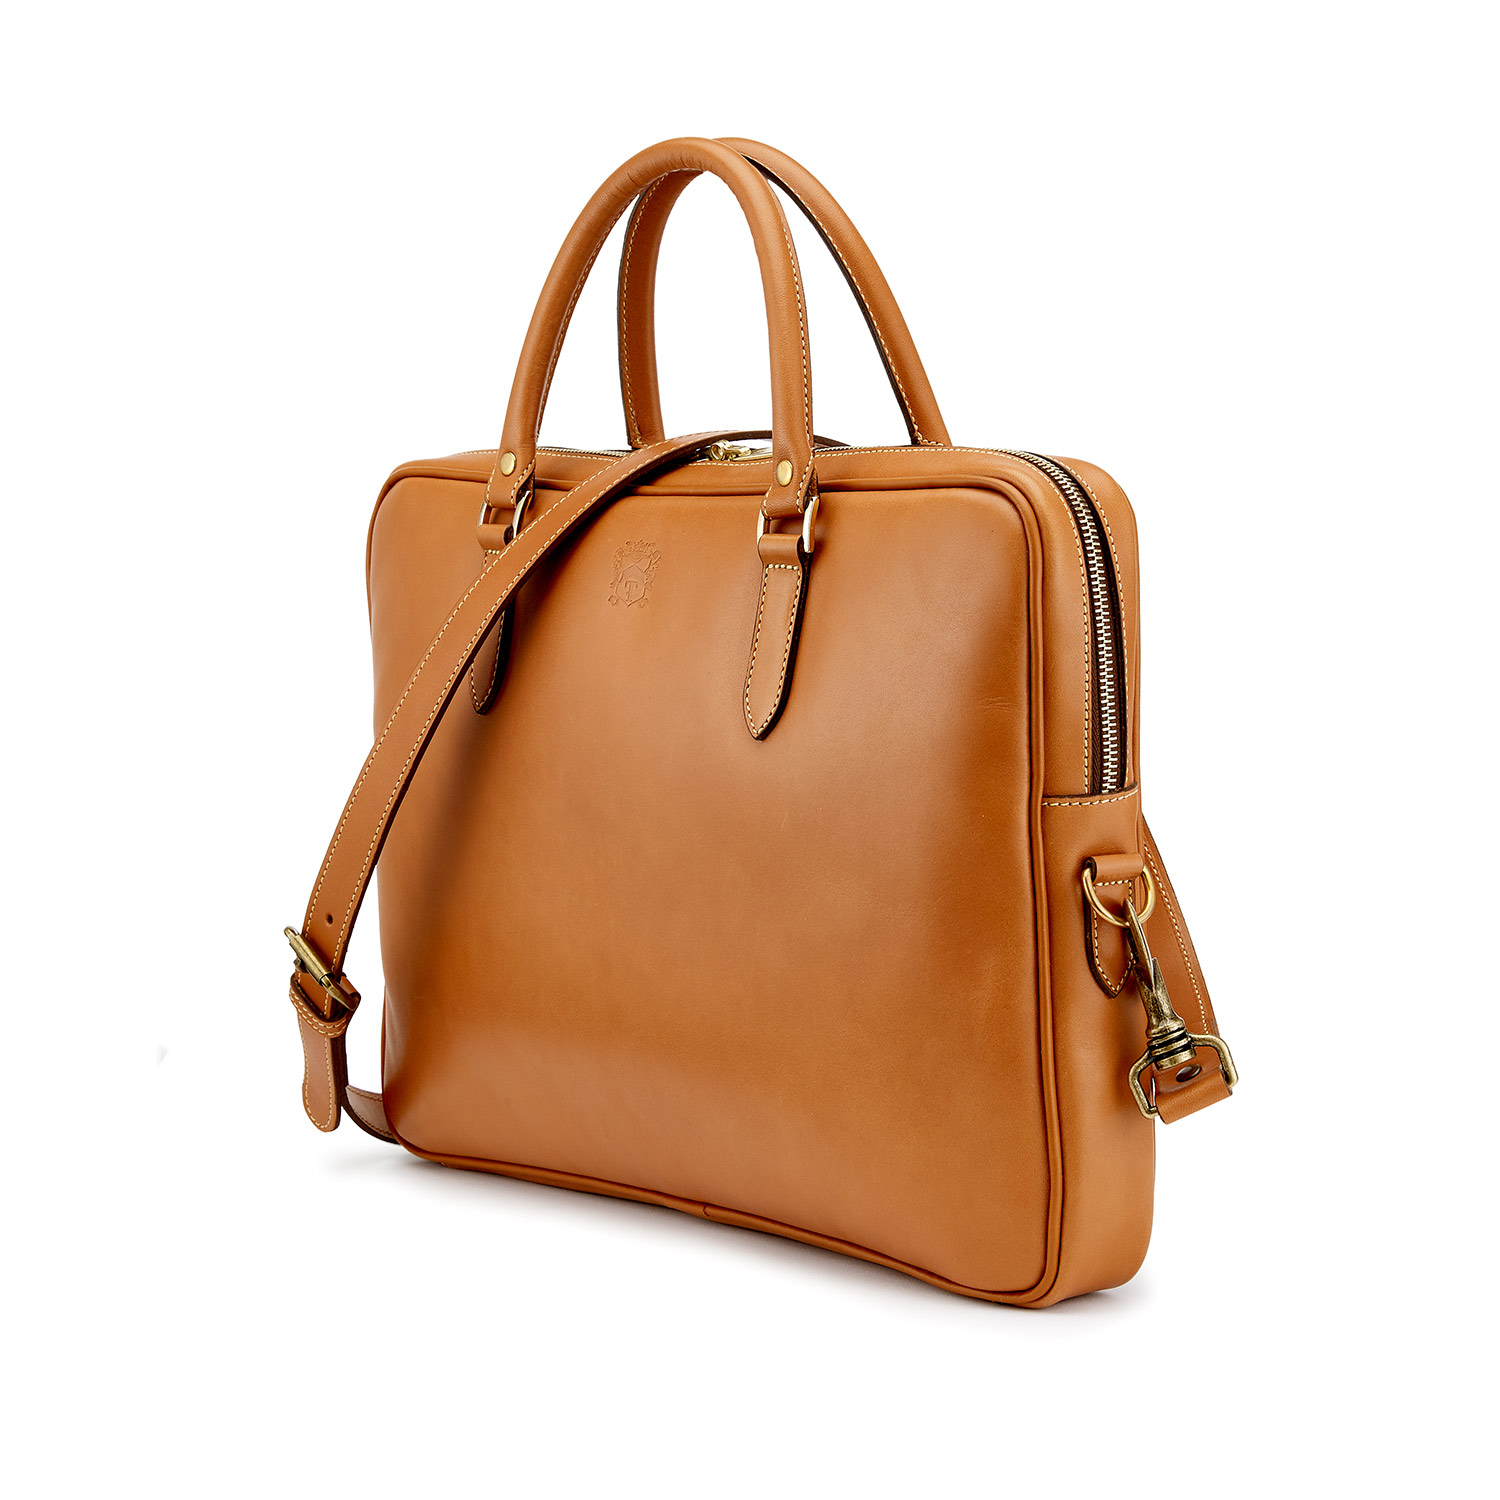 Tusting Piccadilly Leather Briefcase in Tan Angle with Strap